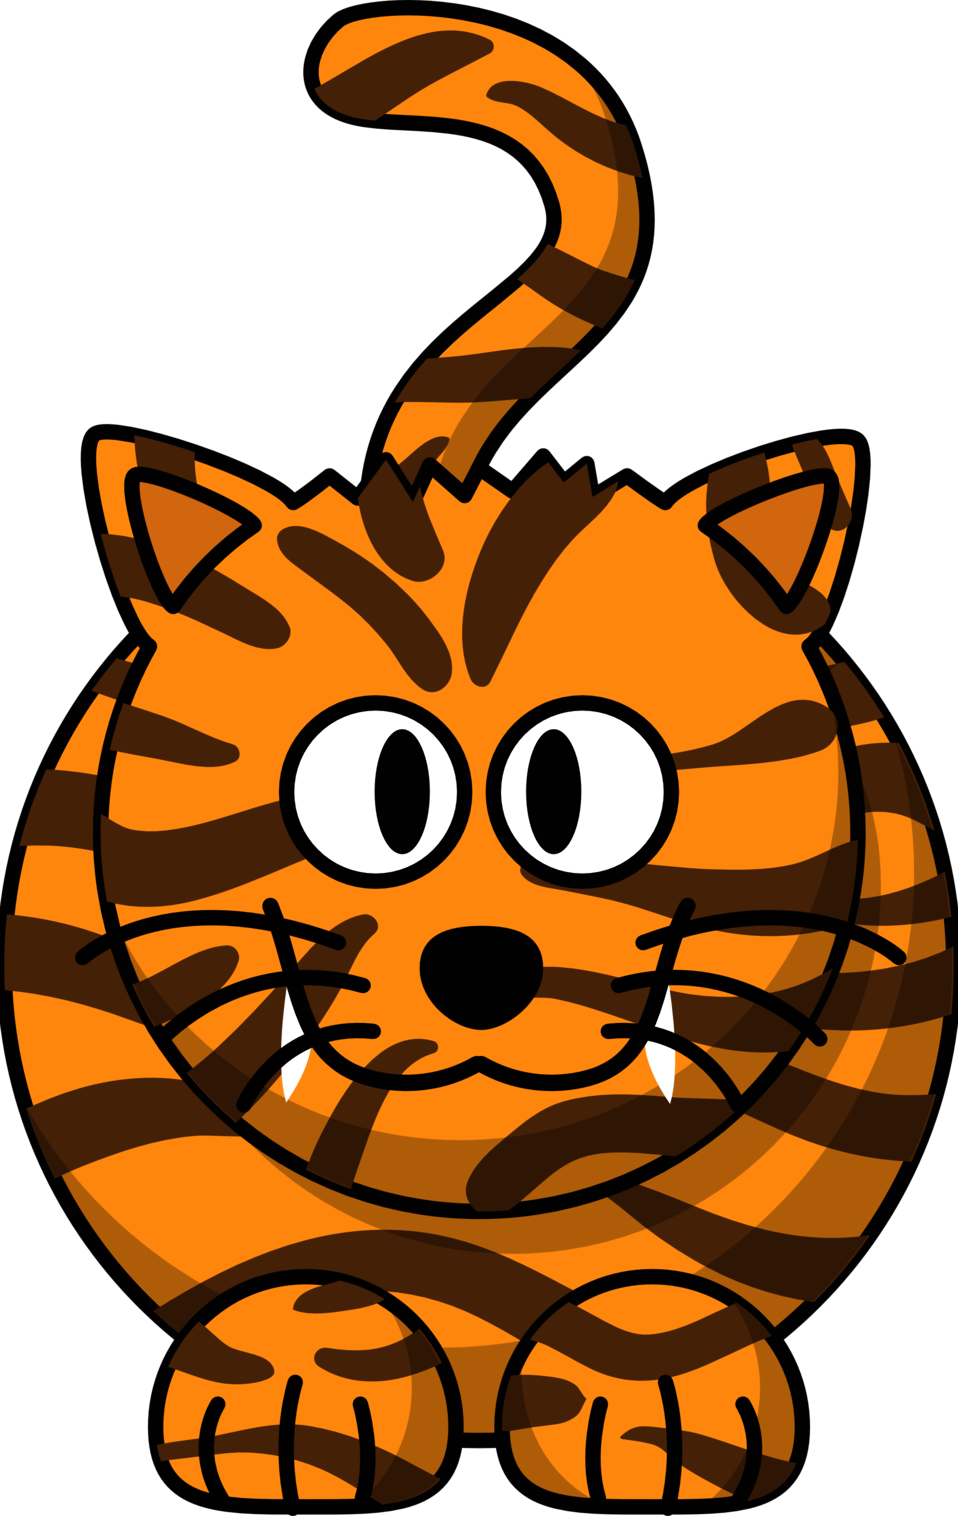 Brown cat clipart library Public Domain Clip Art Image | Illustration of a cartoon tiger | ID ... library